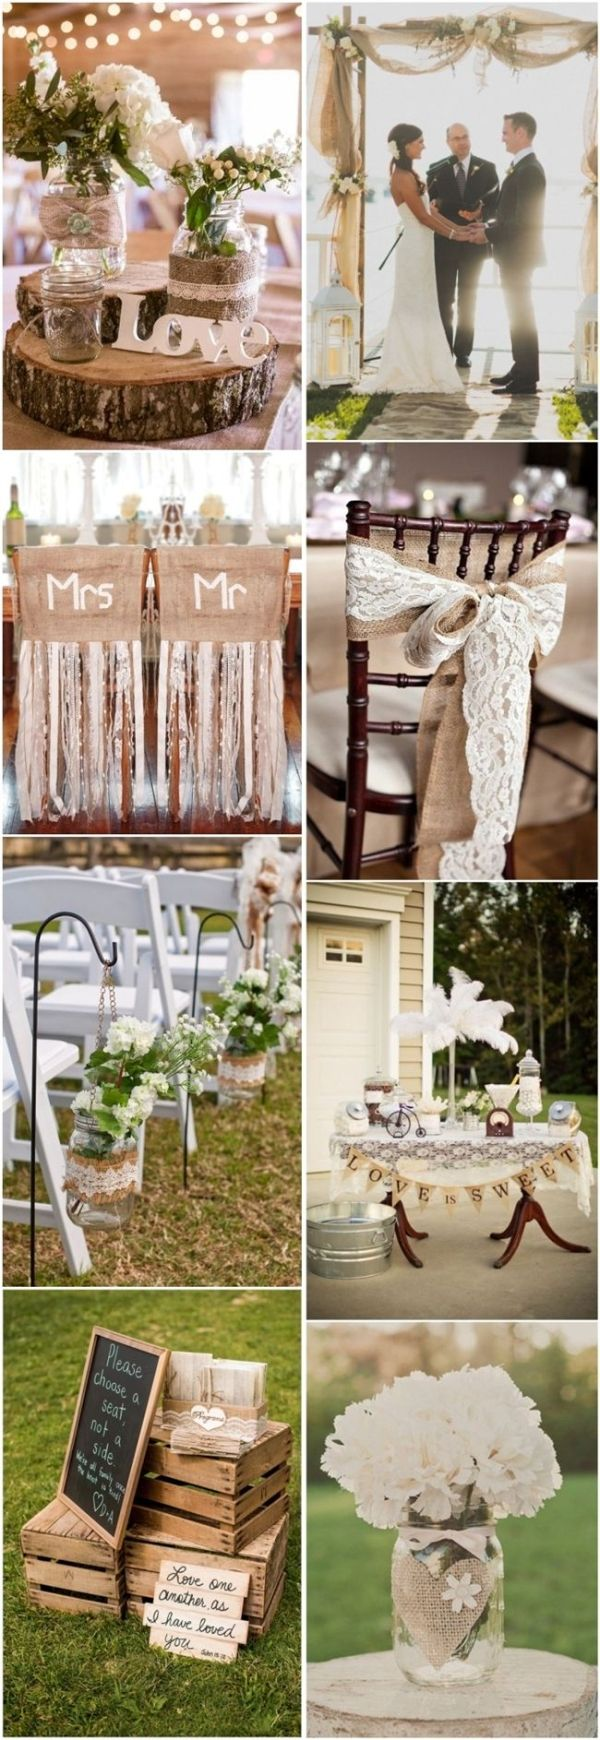 country rustic wedding ideas- burlap & lace wedding theme ideas by bernice